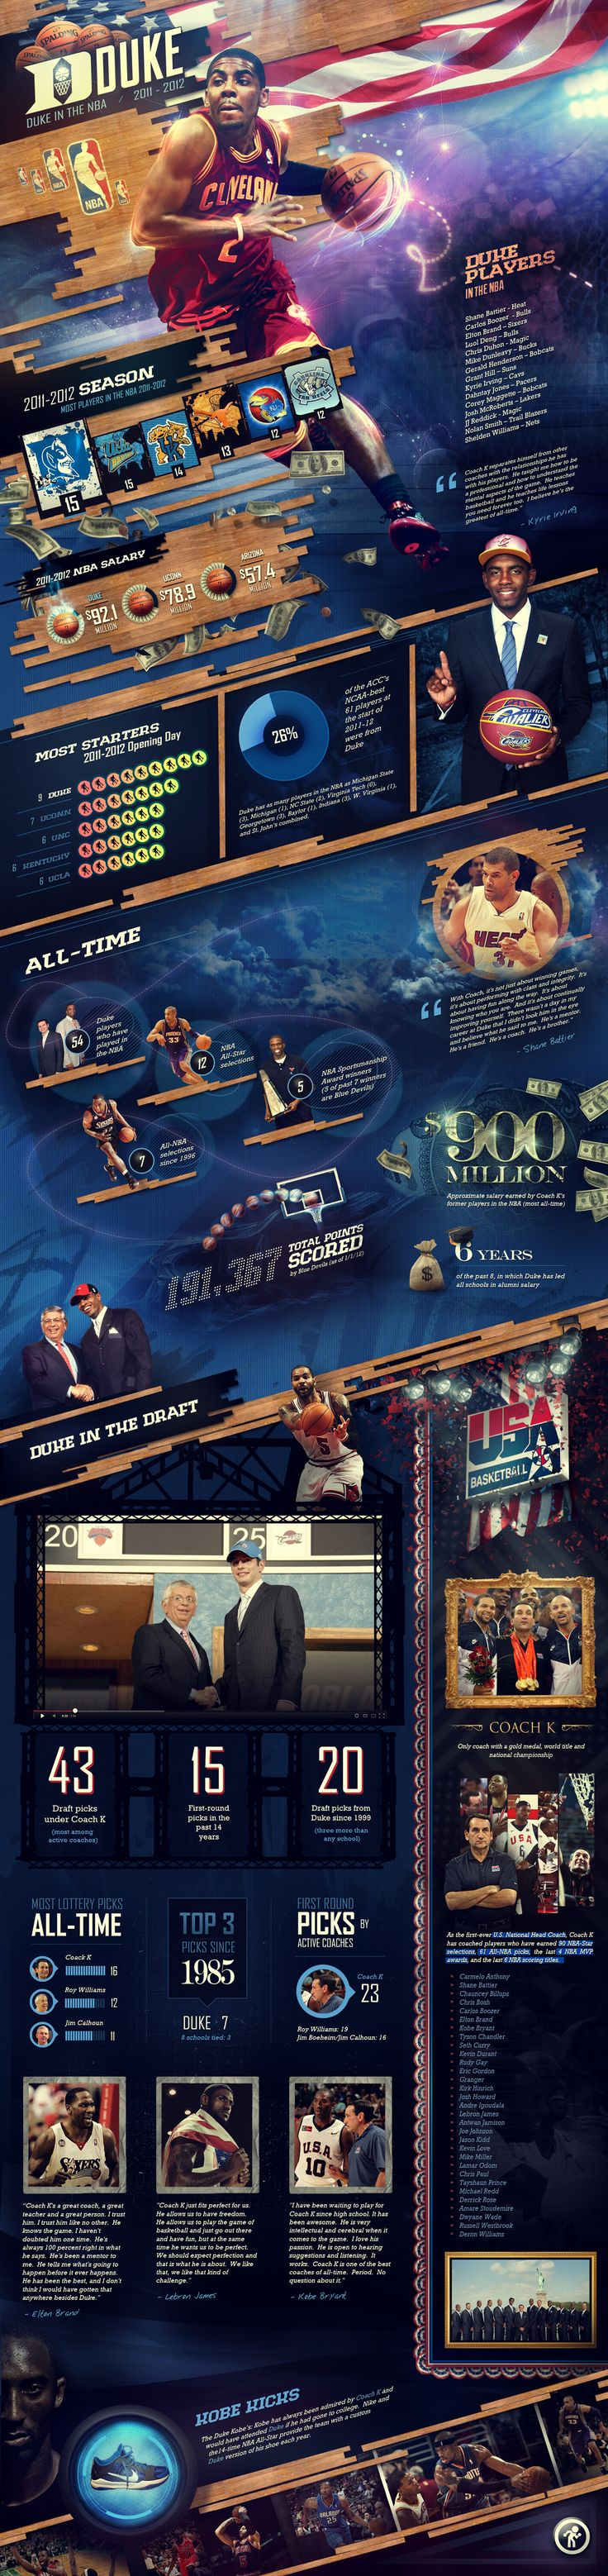 - Duke In The NBA Infographic - by loveinjected on deviantART #infographic #design #creative